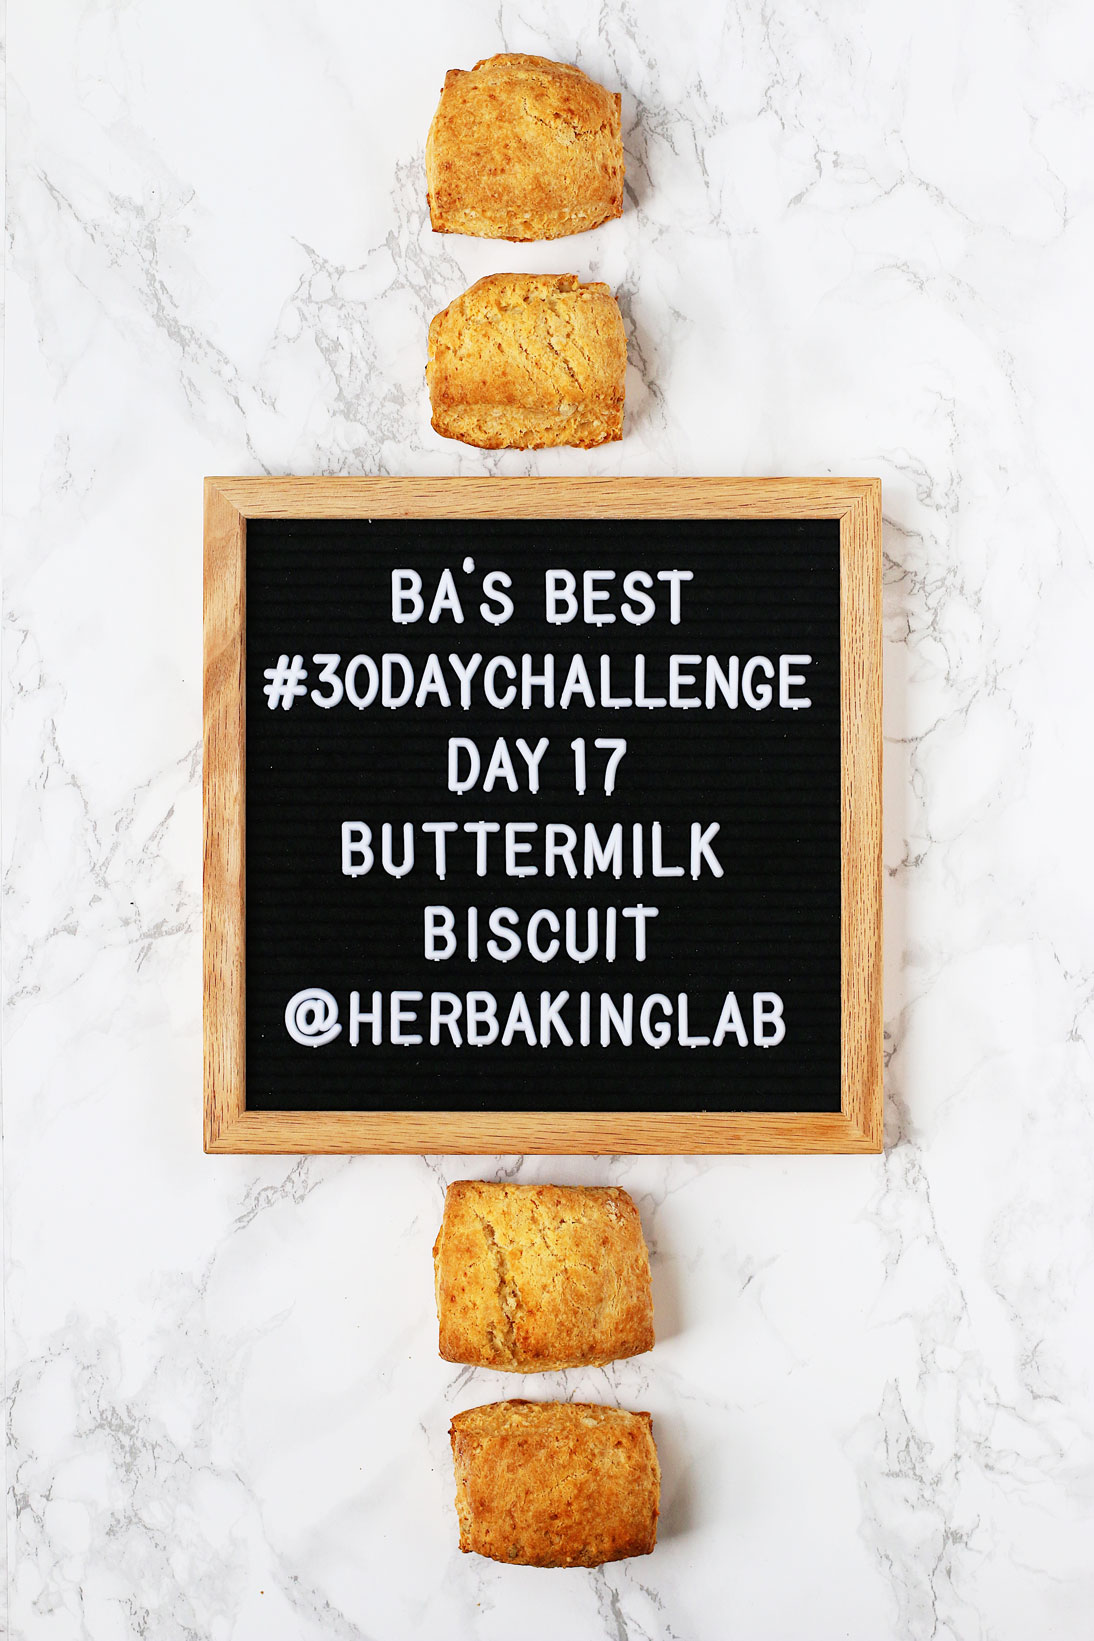 #ba30daychallenge-bon-appetit-best-recipes-day-17-buttermilk-biscuit